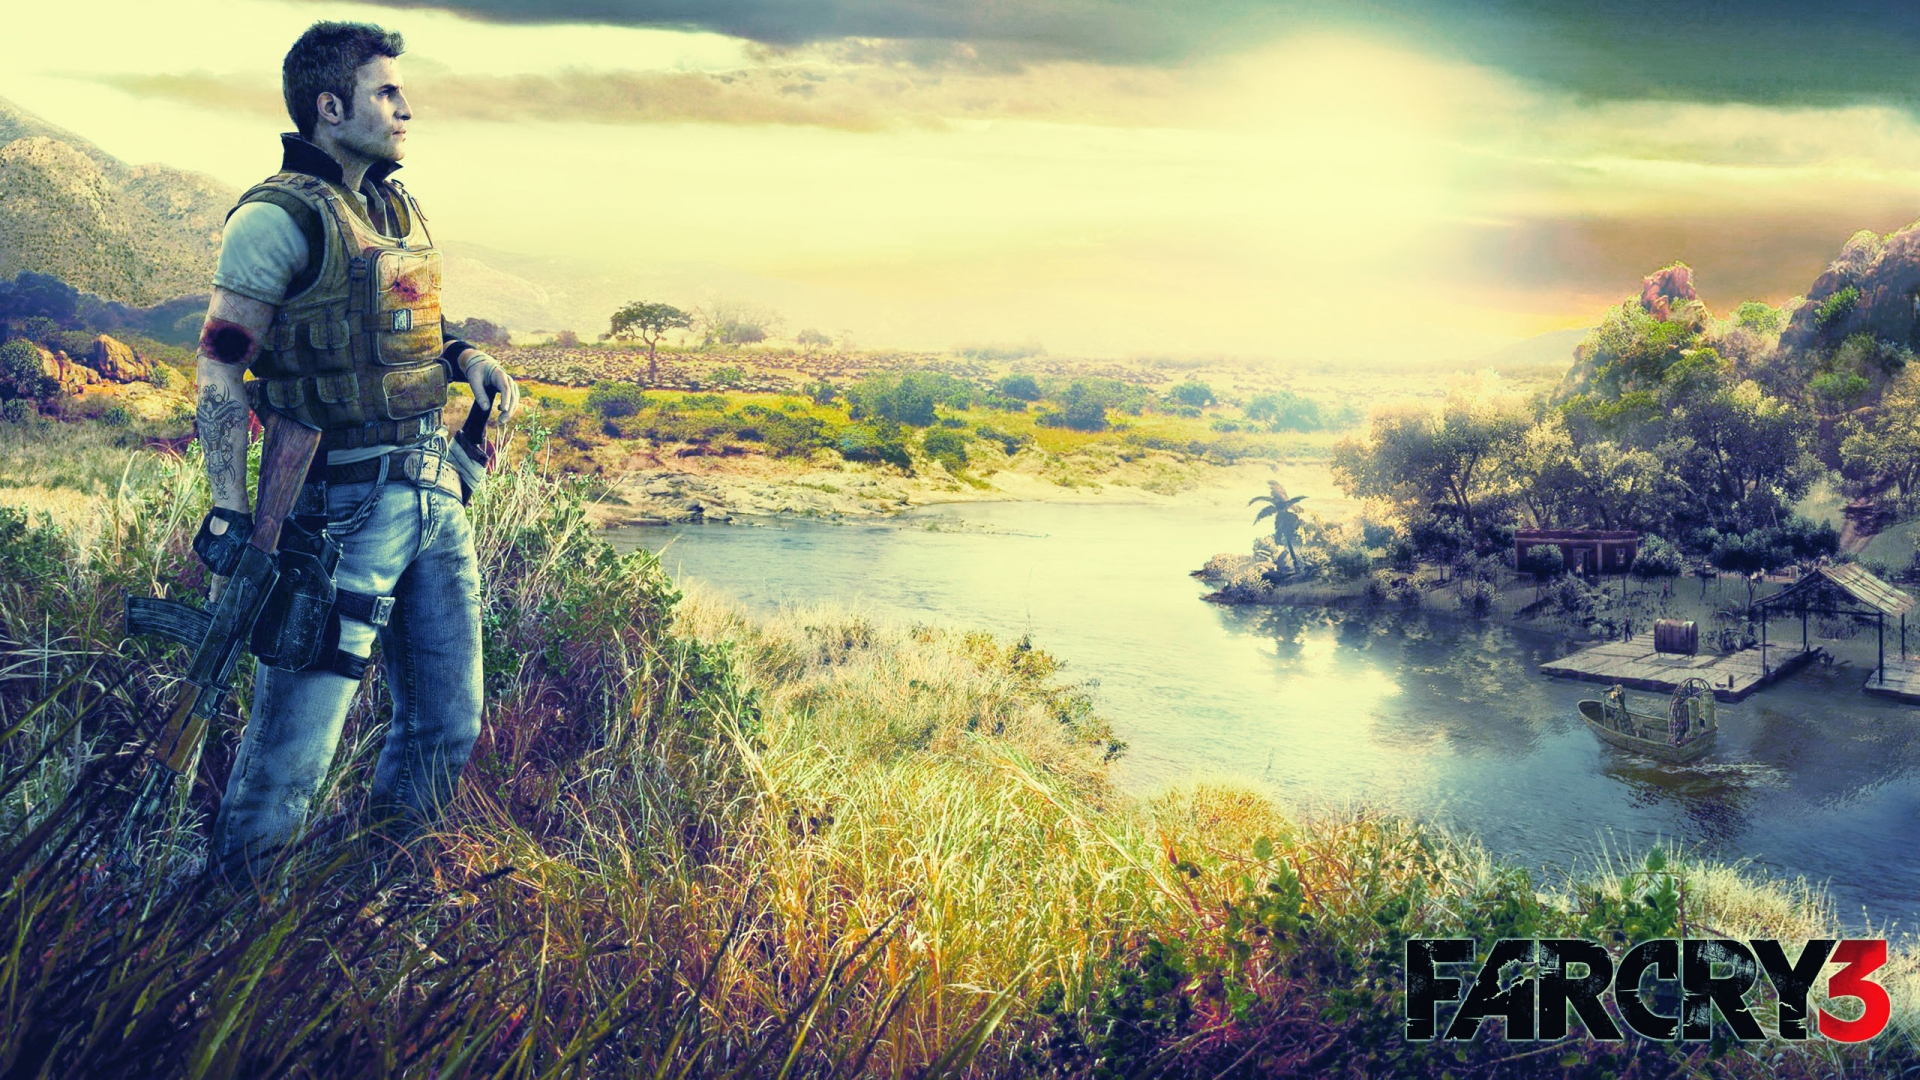 http://2.bp.blogspot.com/-IjcrkGj-_Yw/UDDJhROuywI/AAAAAAAAHSw/a_OvFT7e9l8/s0/far-cry-3-game-1920x1080-wallpaper.jpg